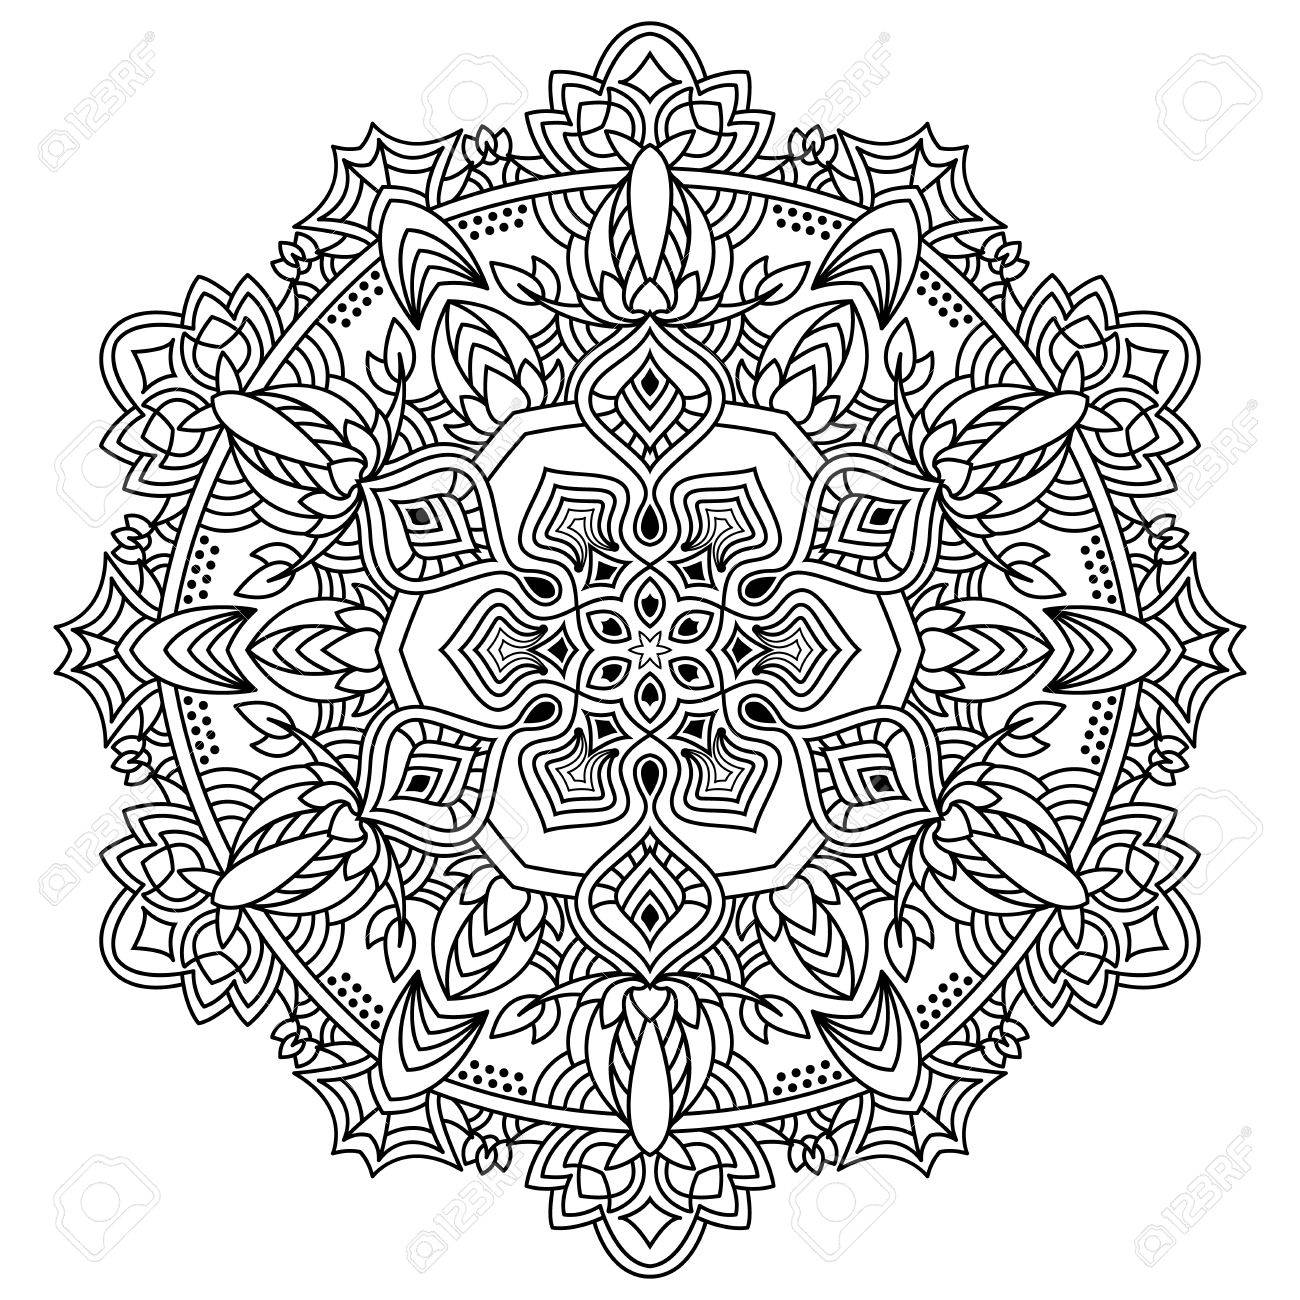 Abstract Collared Mandala Coloring Book Or Tatto. Monochrome ...